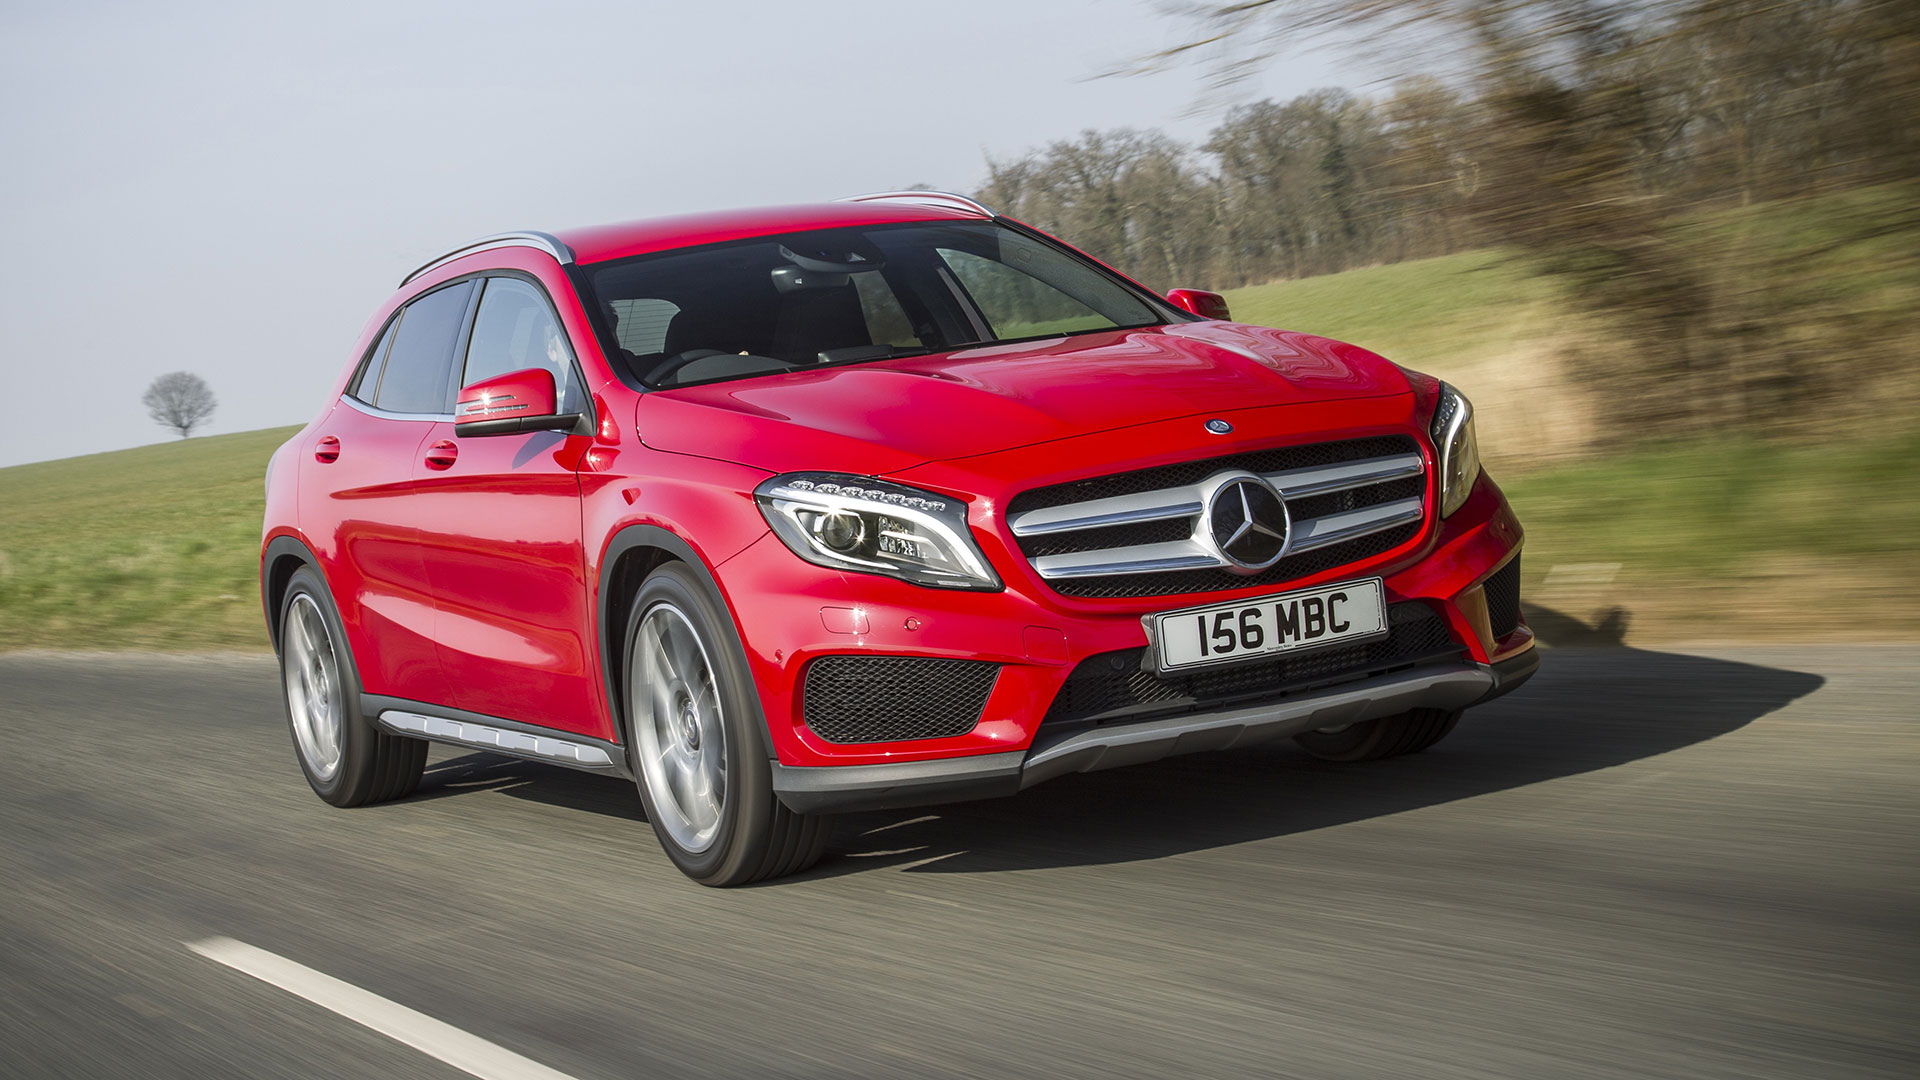 Used mercedes benz gla class cars for sale on auto trader uk for Www mercedes benz used cars